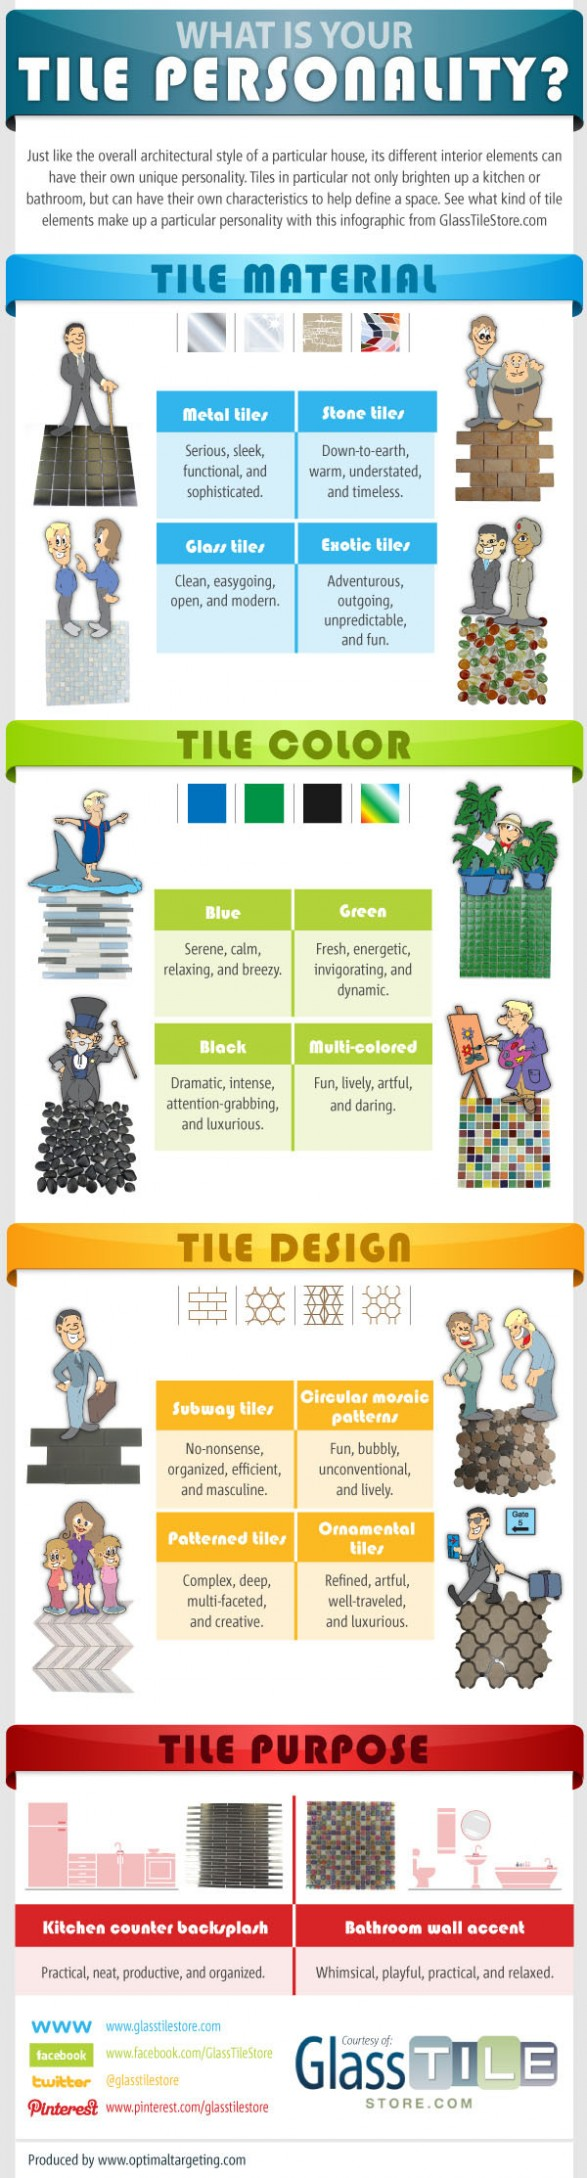 Tile Design and Personality